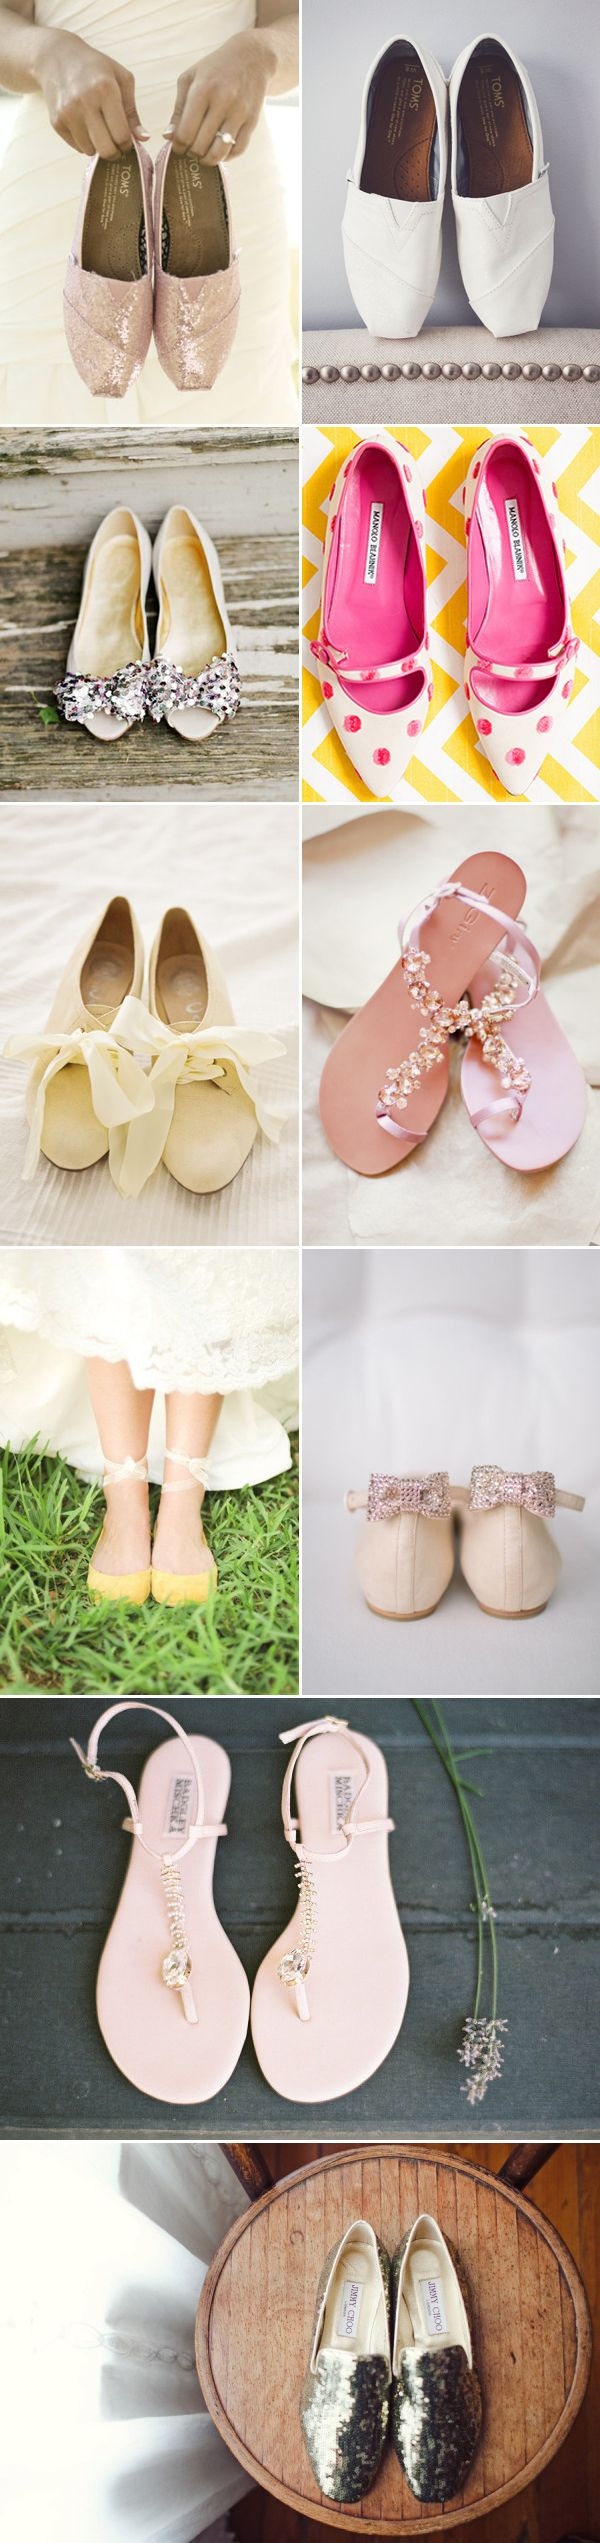 ddc6a99d8 Comfort without Sacrificing Style! 27 Pairs of Gorgeous Bridal Flats ...